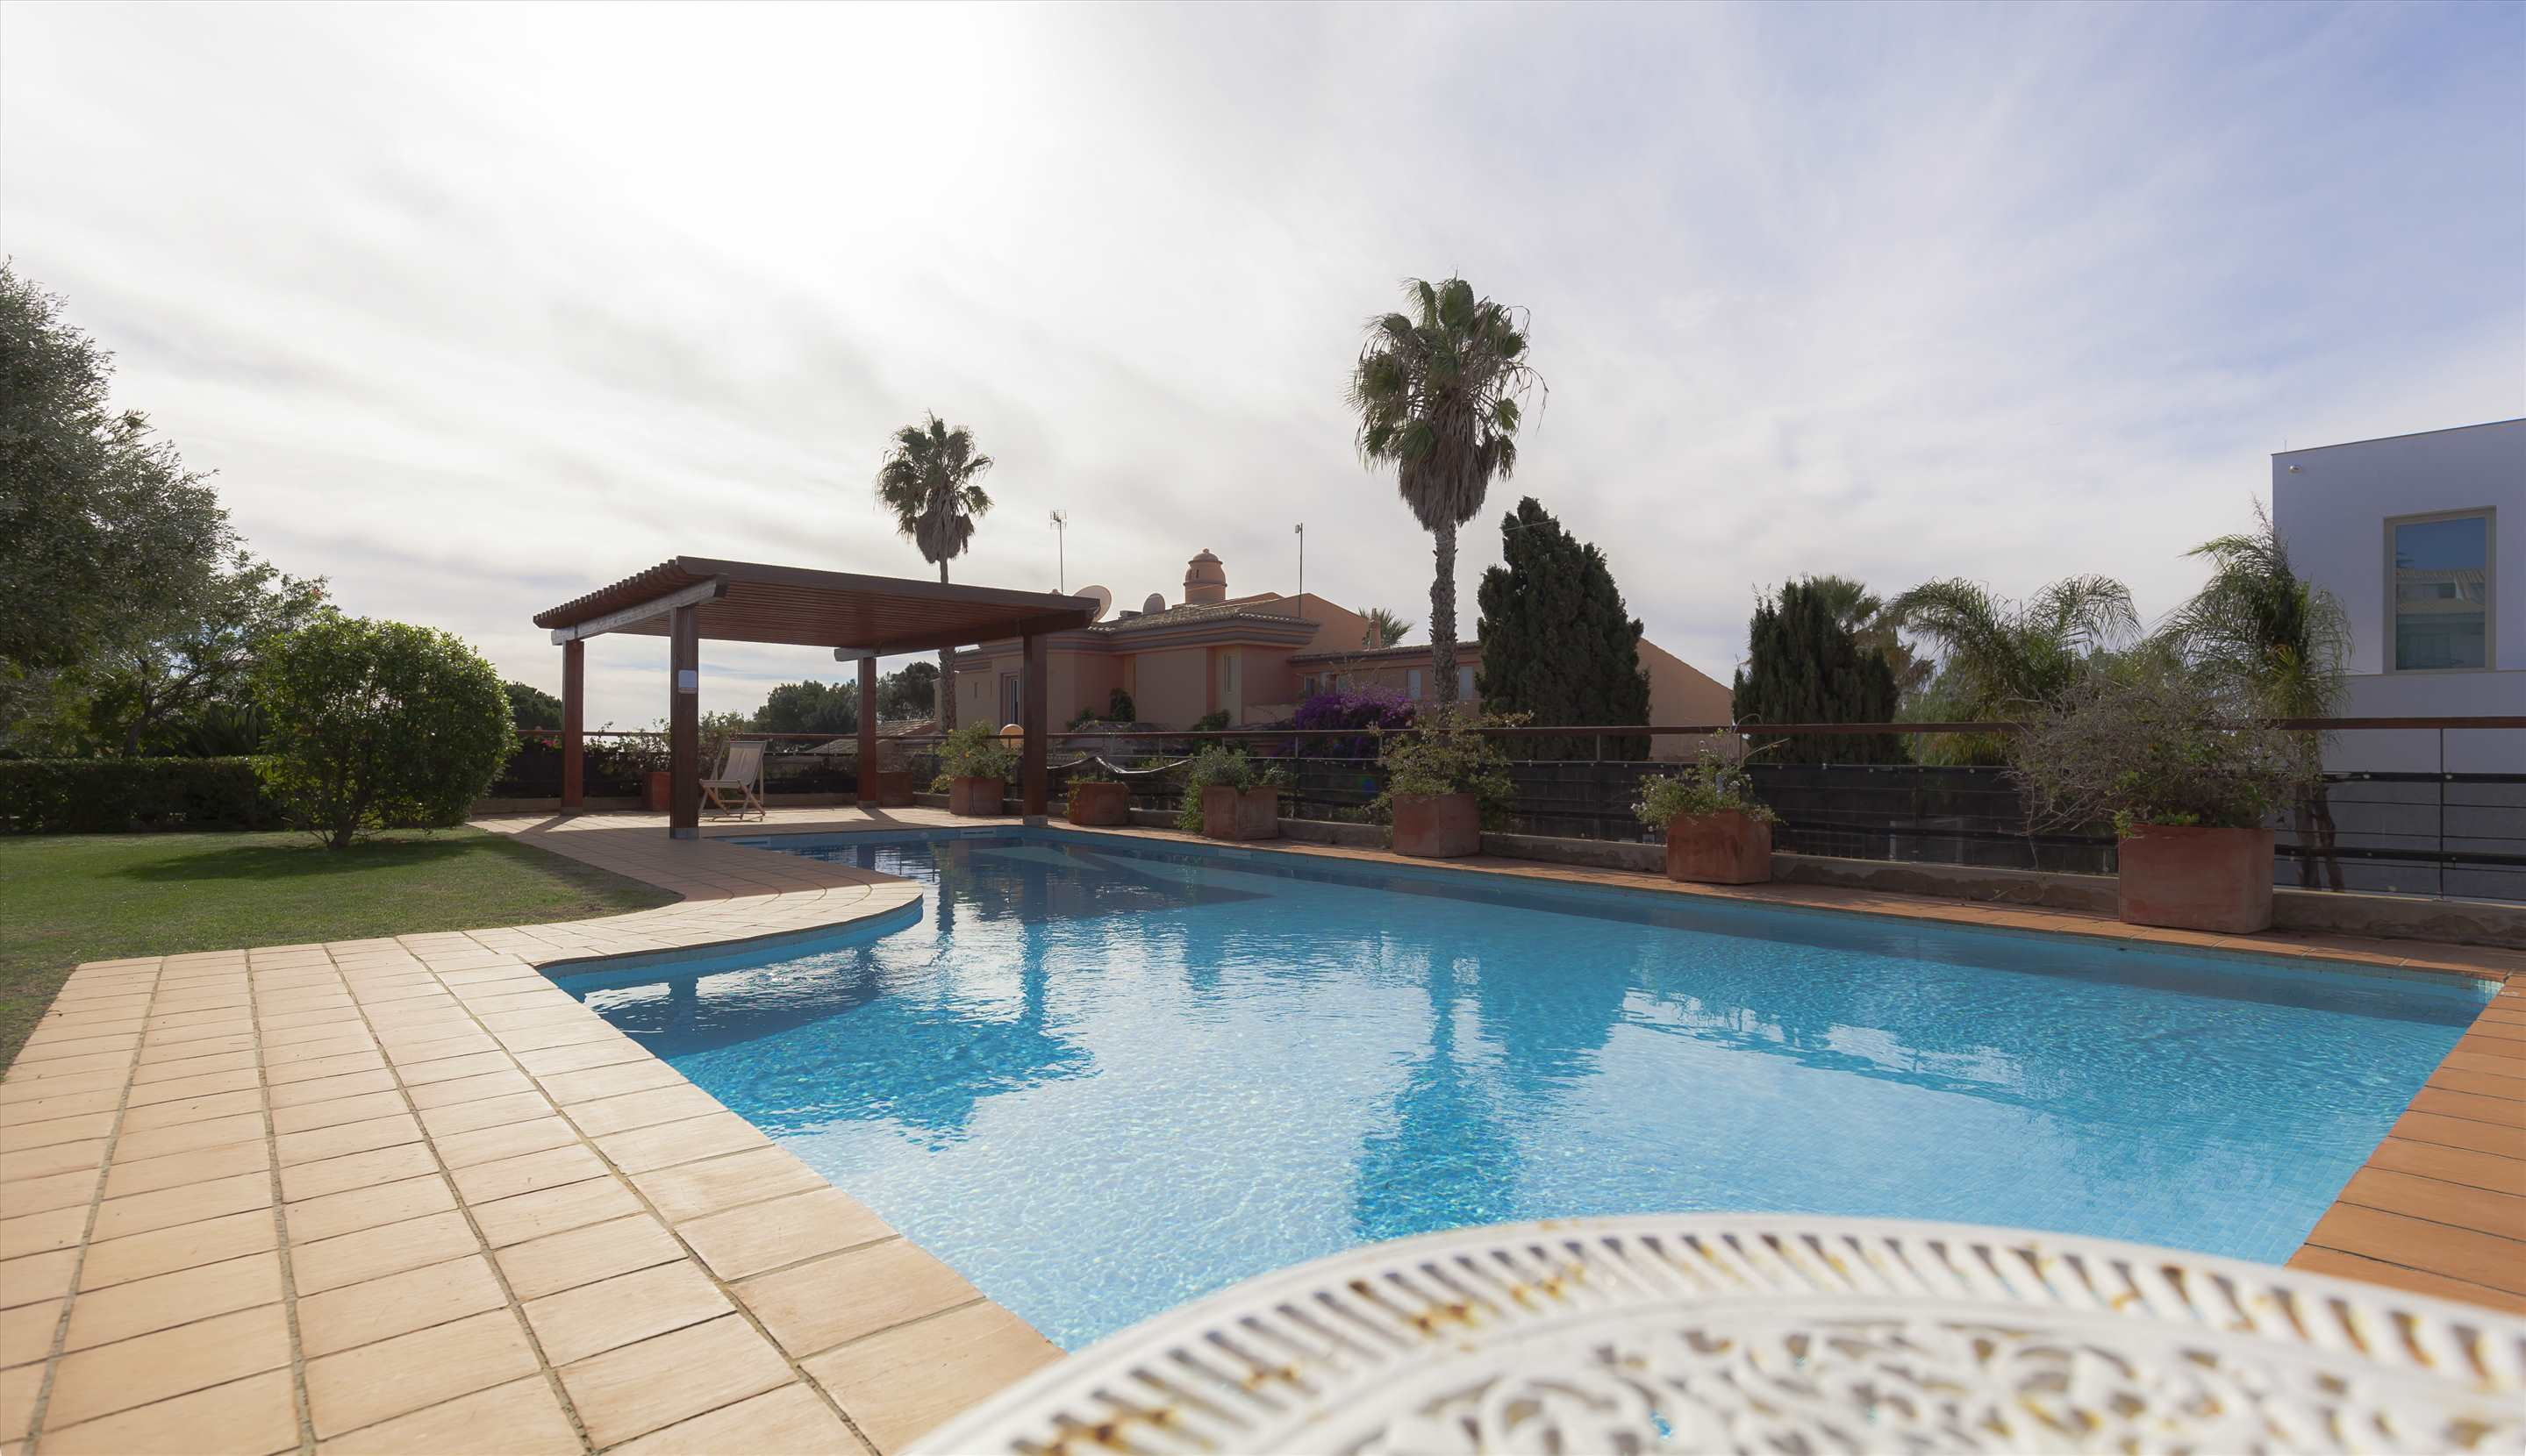 Casa Grande Mós , 8 bedroom villa in Lagos and Praia da Luz, Algarve Photo #2